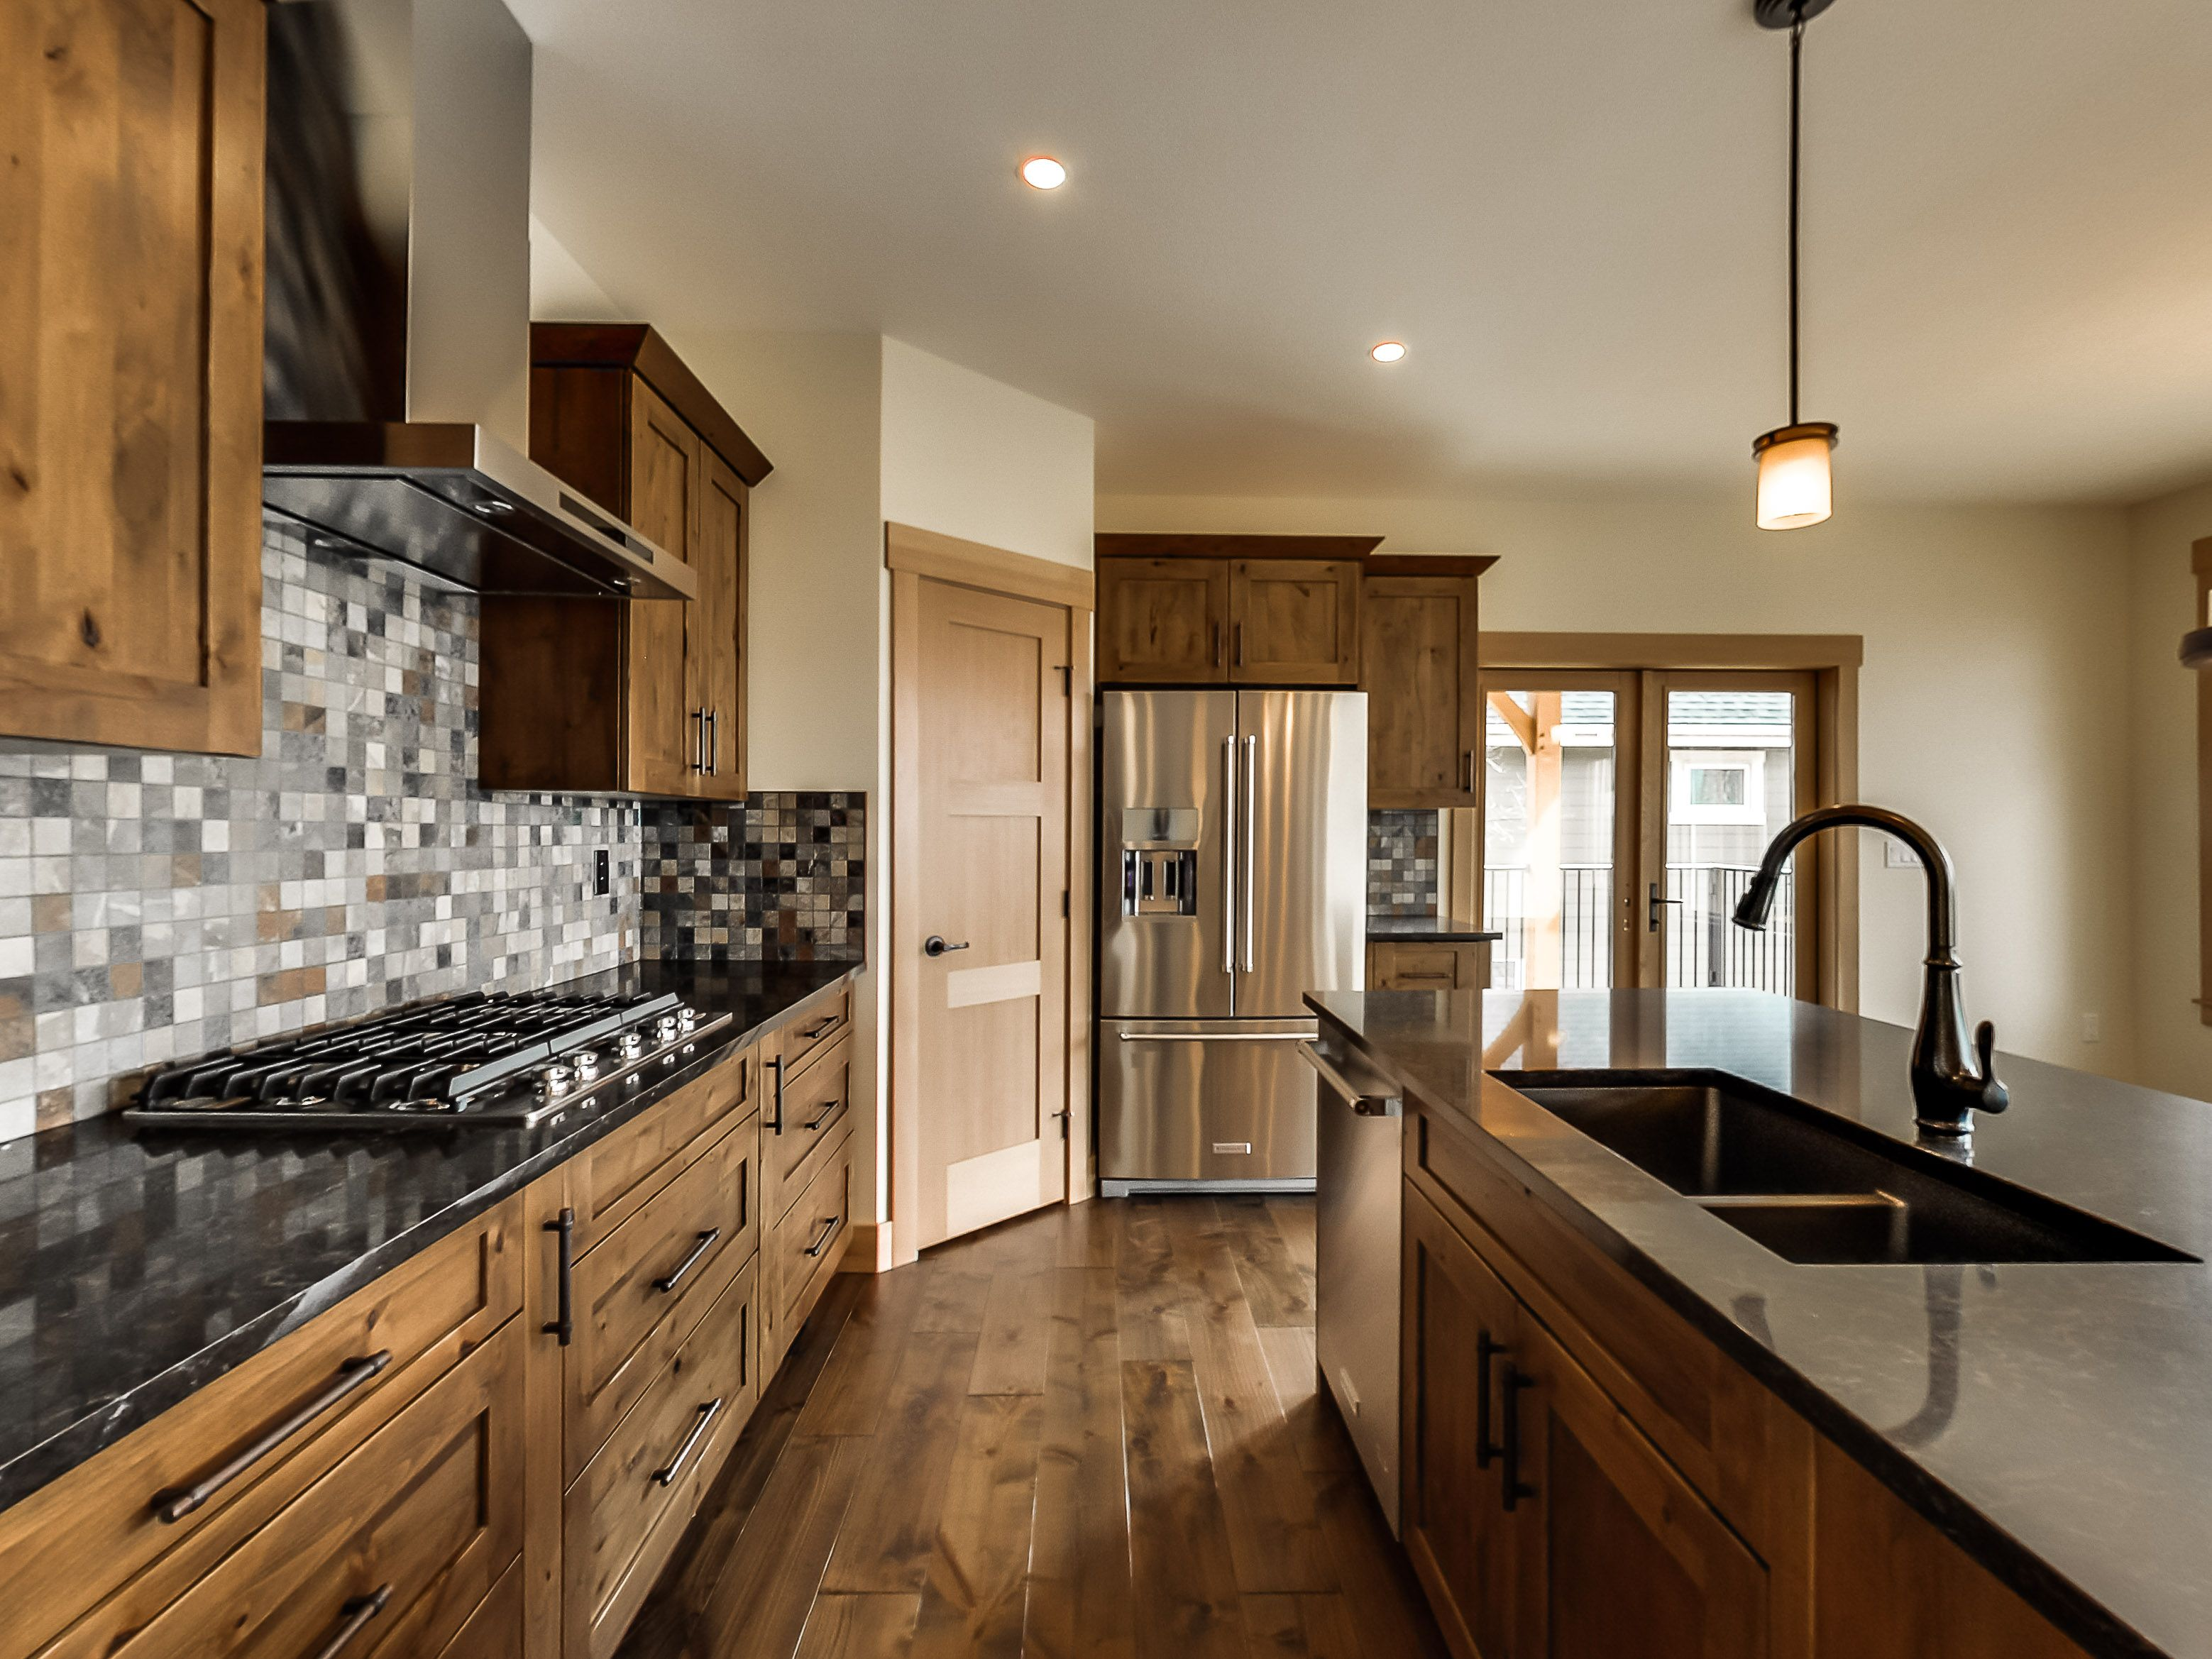 Engineered Hardwood Floors, Natural Alder Cabinets, Stainless Steel Appliances, Slate Tile, Timber Frame Details